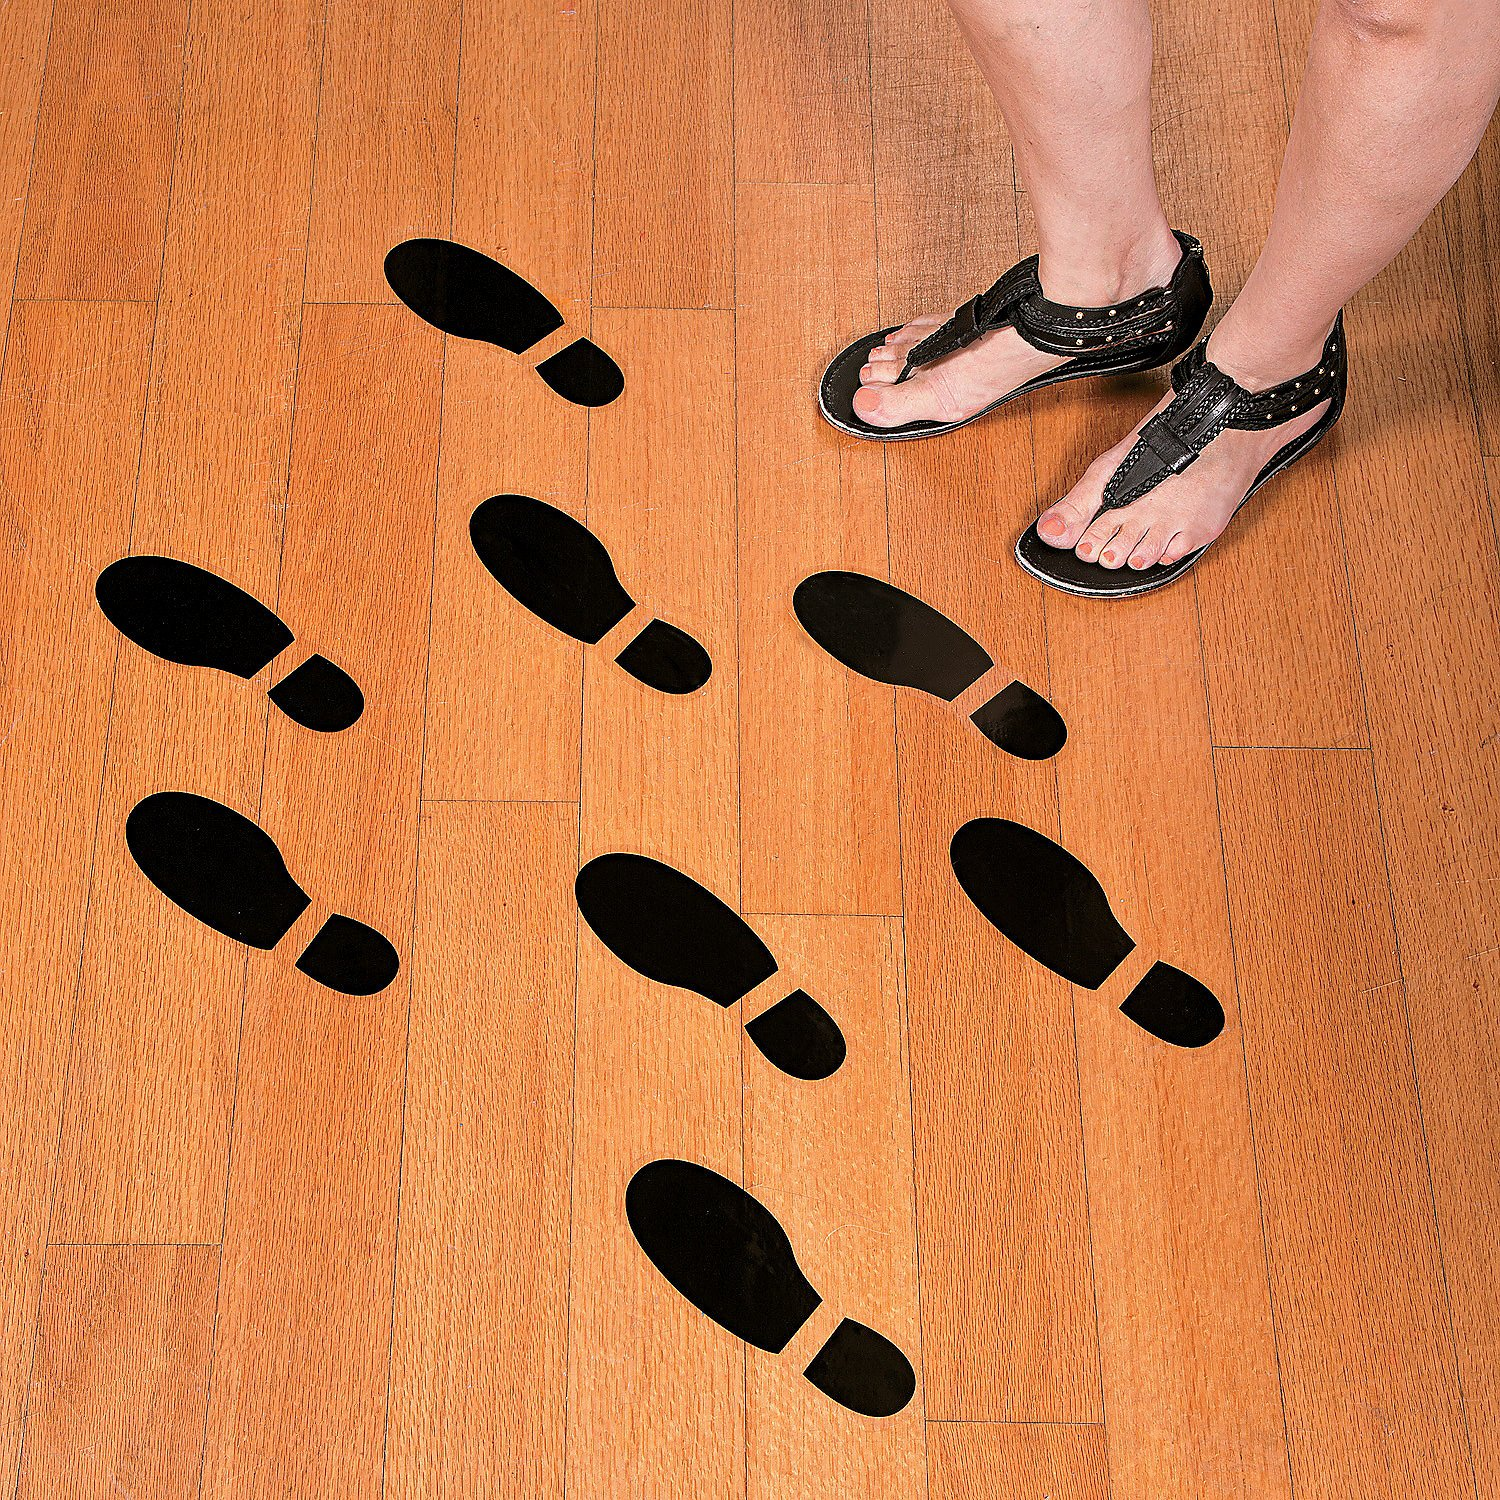 Set of 16 LARGE SHOE FOOTPRINT FLOOR DECAL CLINGS! ~ 16 Foot Prints ~ 8""